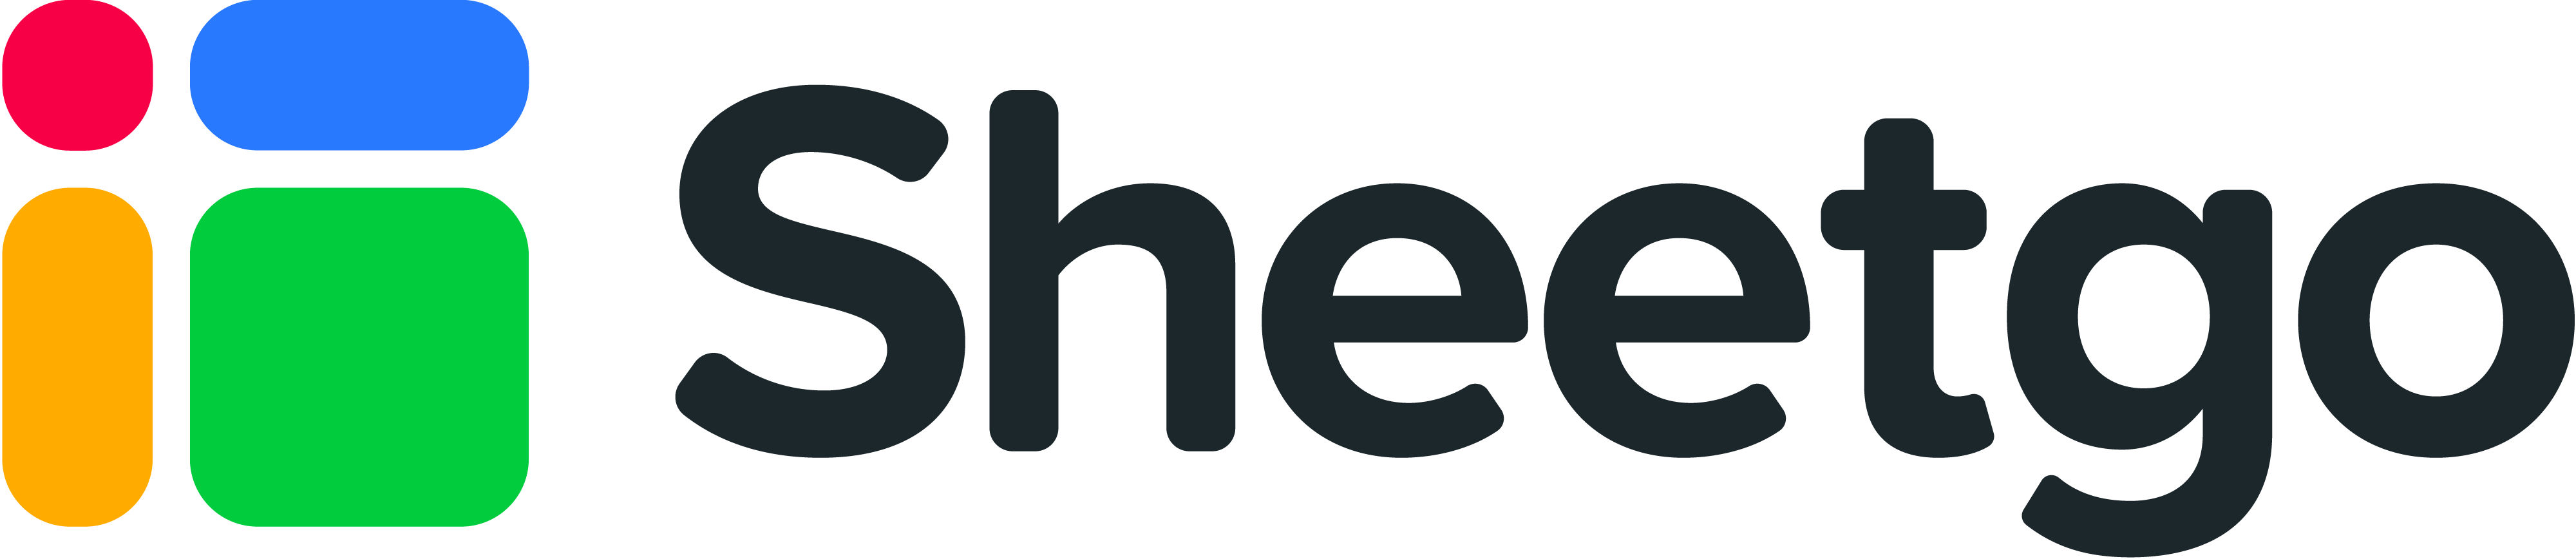 logo-horizontal-sheetgo-fullcolor-dark